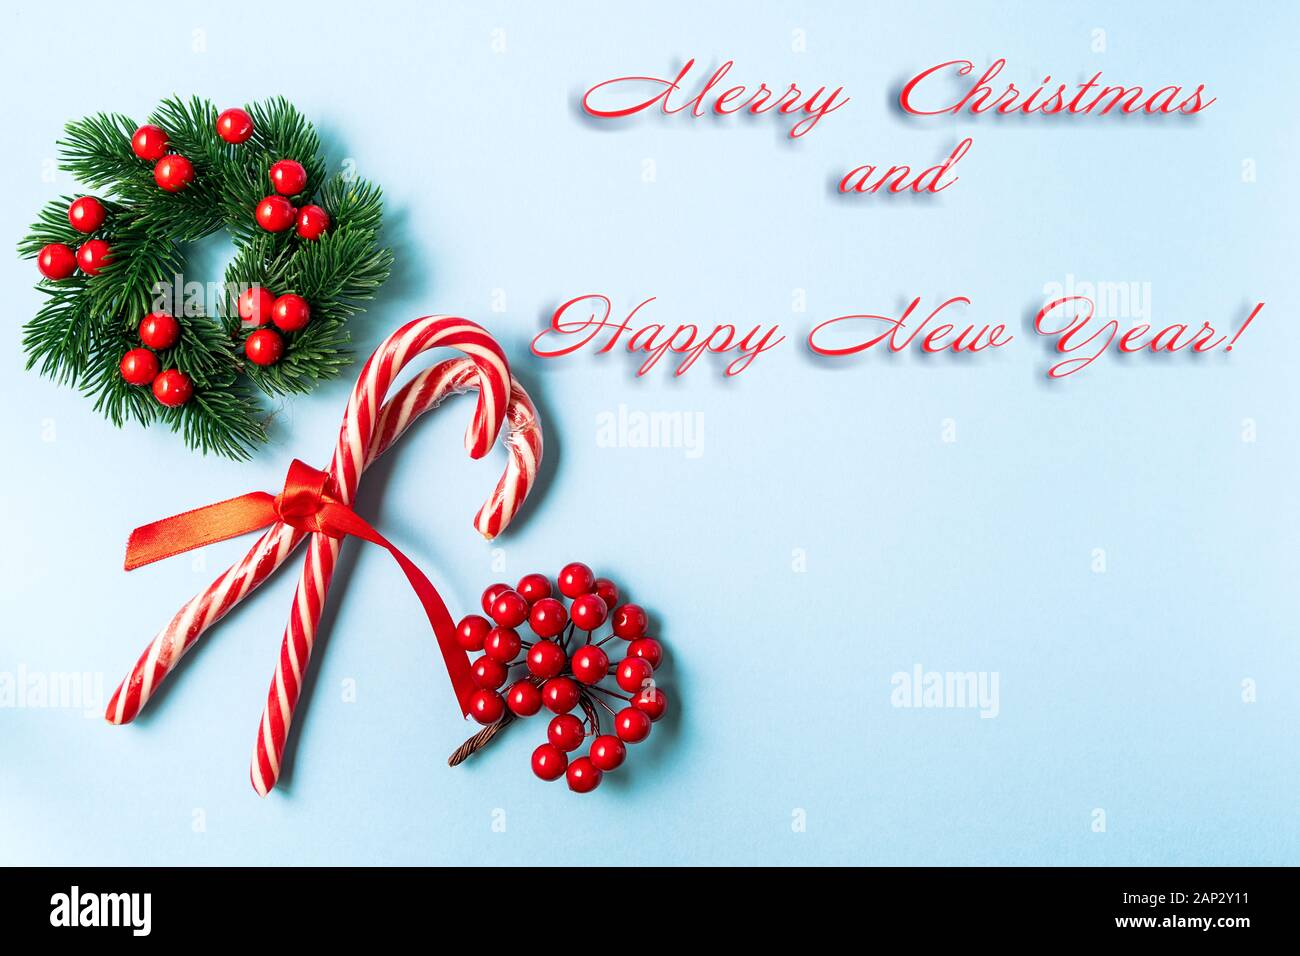 Festive Christmas And New Year Greeting Card With Christmas Candy Cane Red Bow And Christmas Wreath On Blue Background Stock Photo Alamy